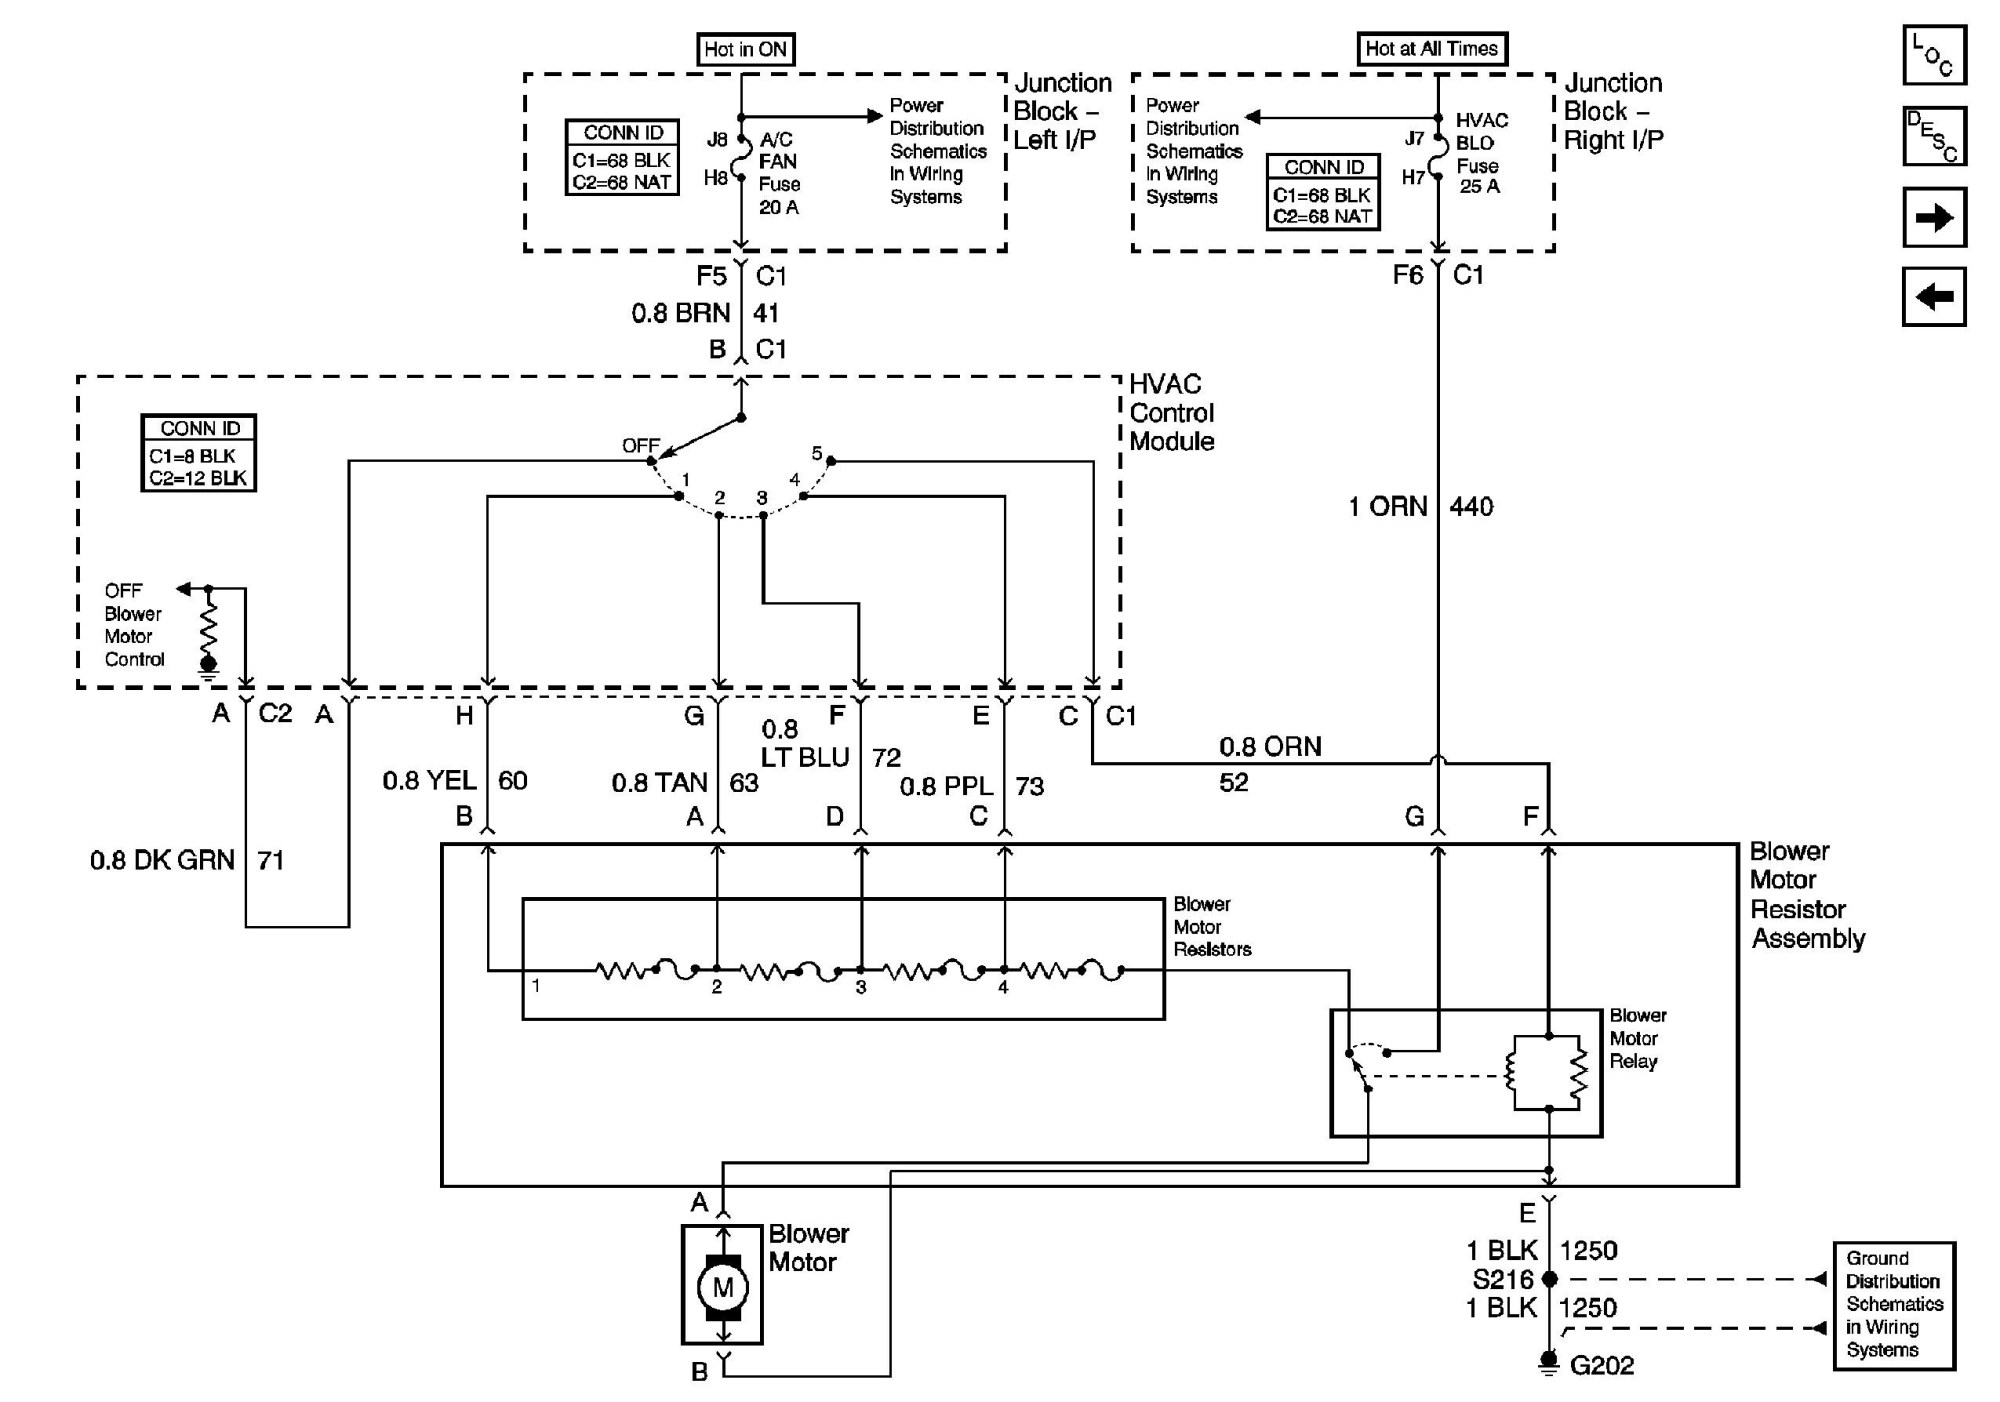 hight resolution of 05 chevy colorado blower motor wiring diagram wiring diagram todays 1998 chevy silverado wiring diagram 2007 chevy silverado blower motor wiring diagram